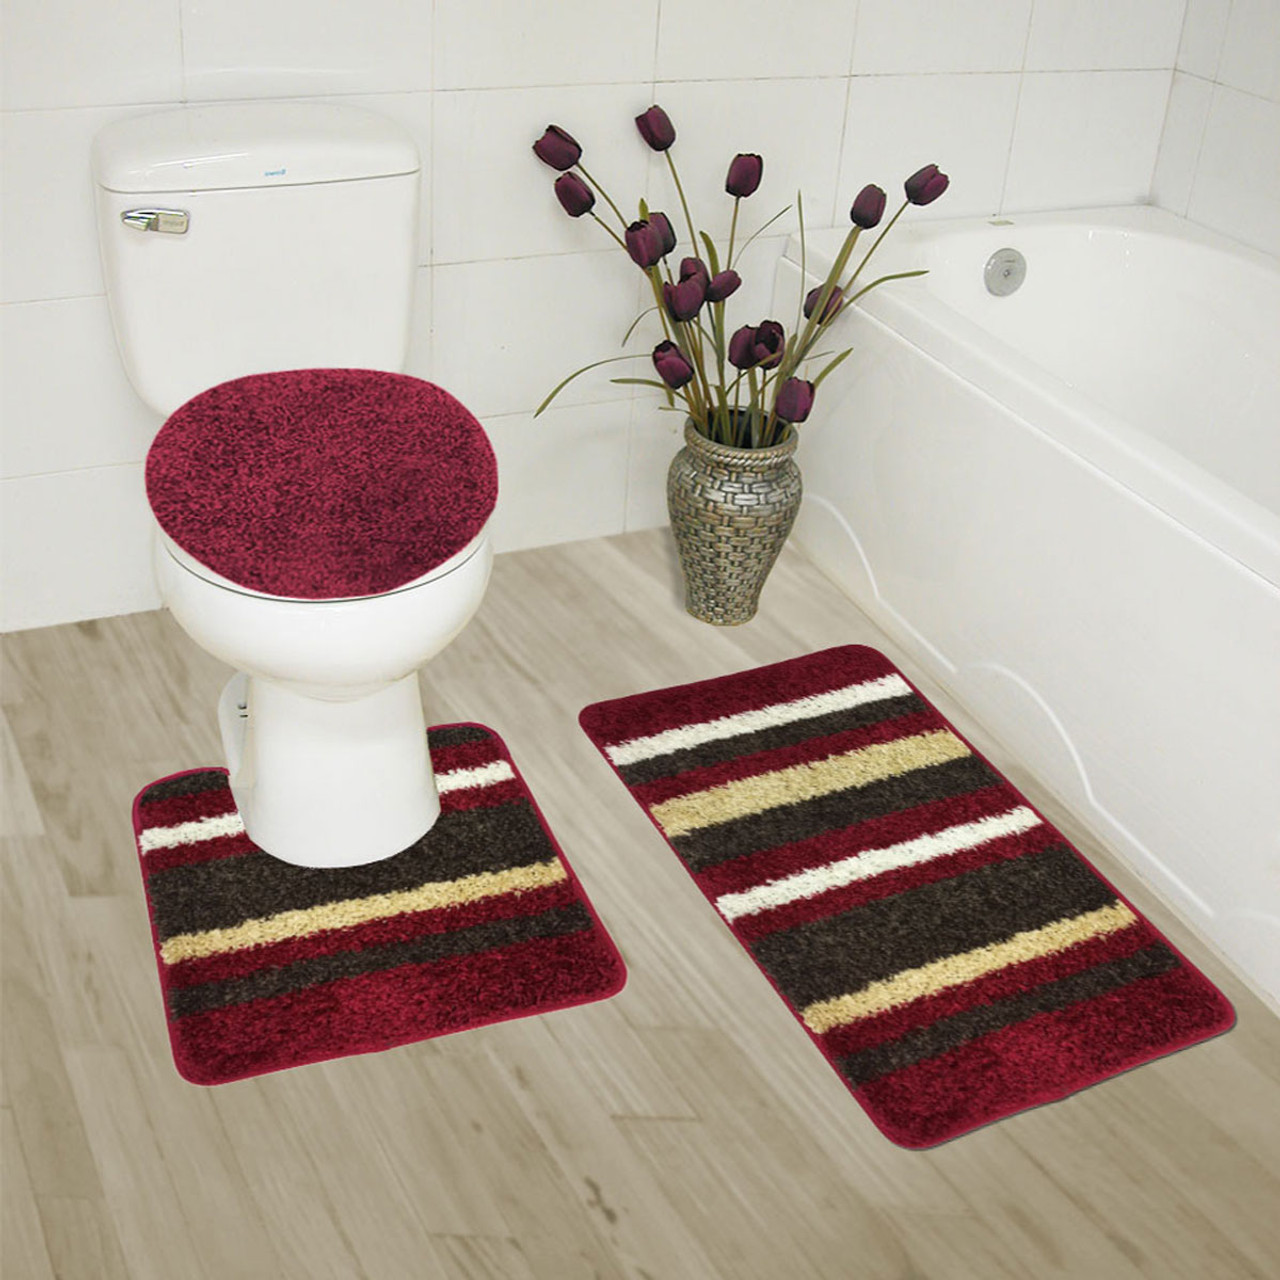 abby 3 piece bathroom rug set bath rug contour rug lid cover - 3 Piece Bathroom Rug Sets